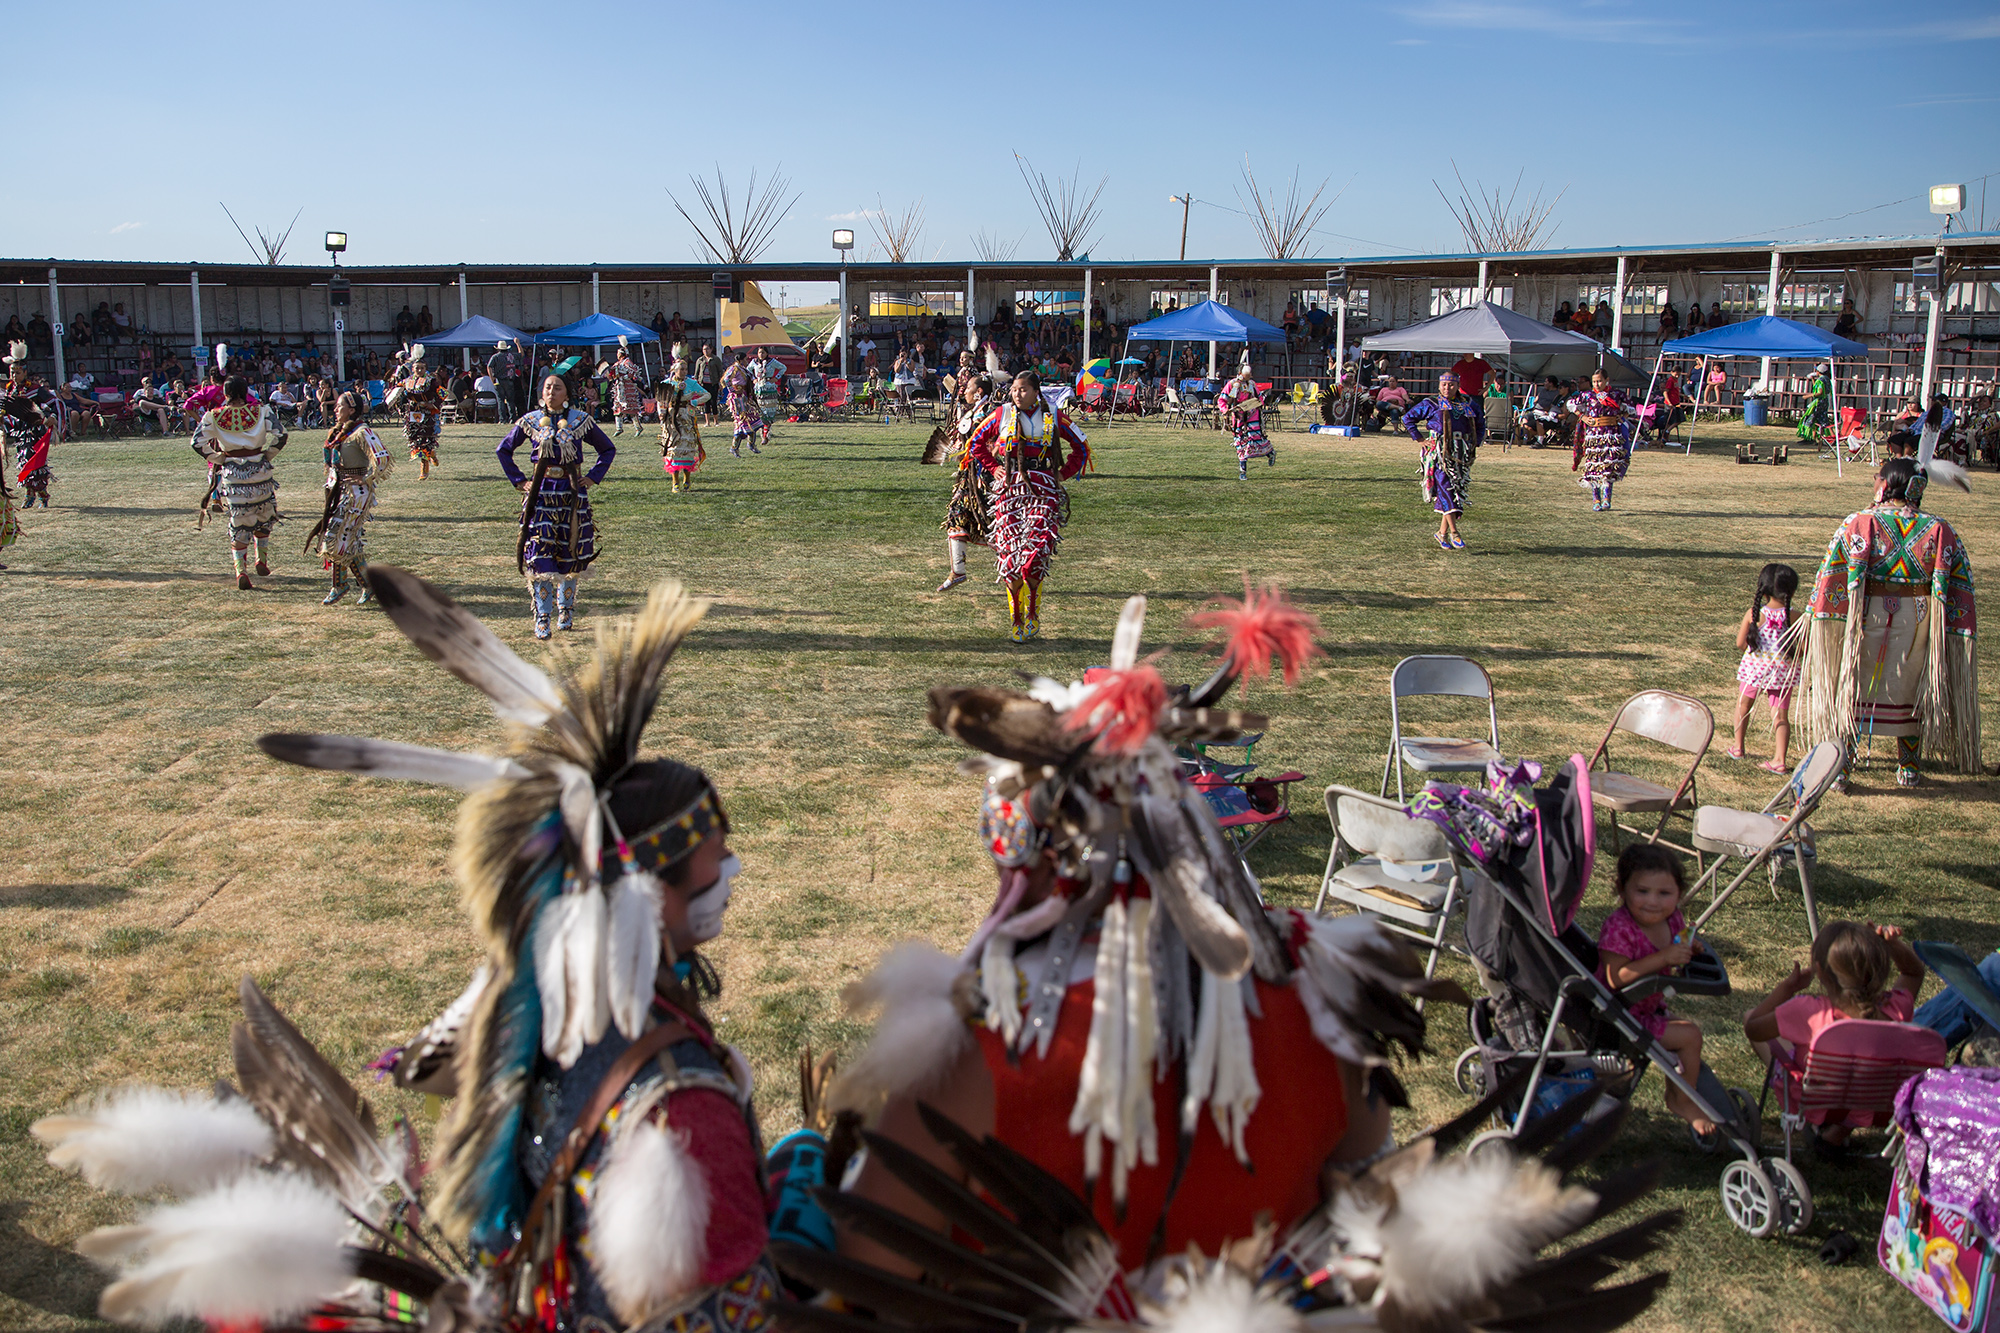 The pow wow was just one of many festivities that took place in Browning during the annual celebration.